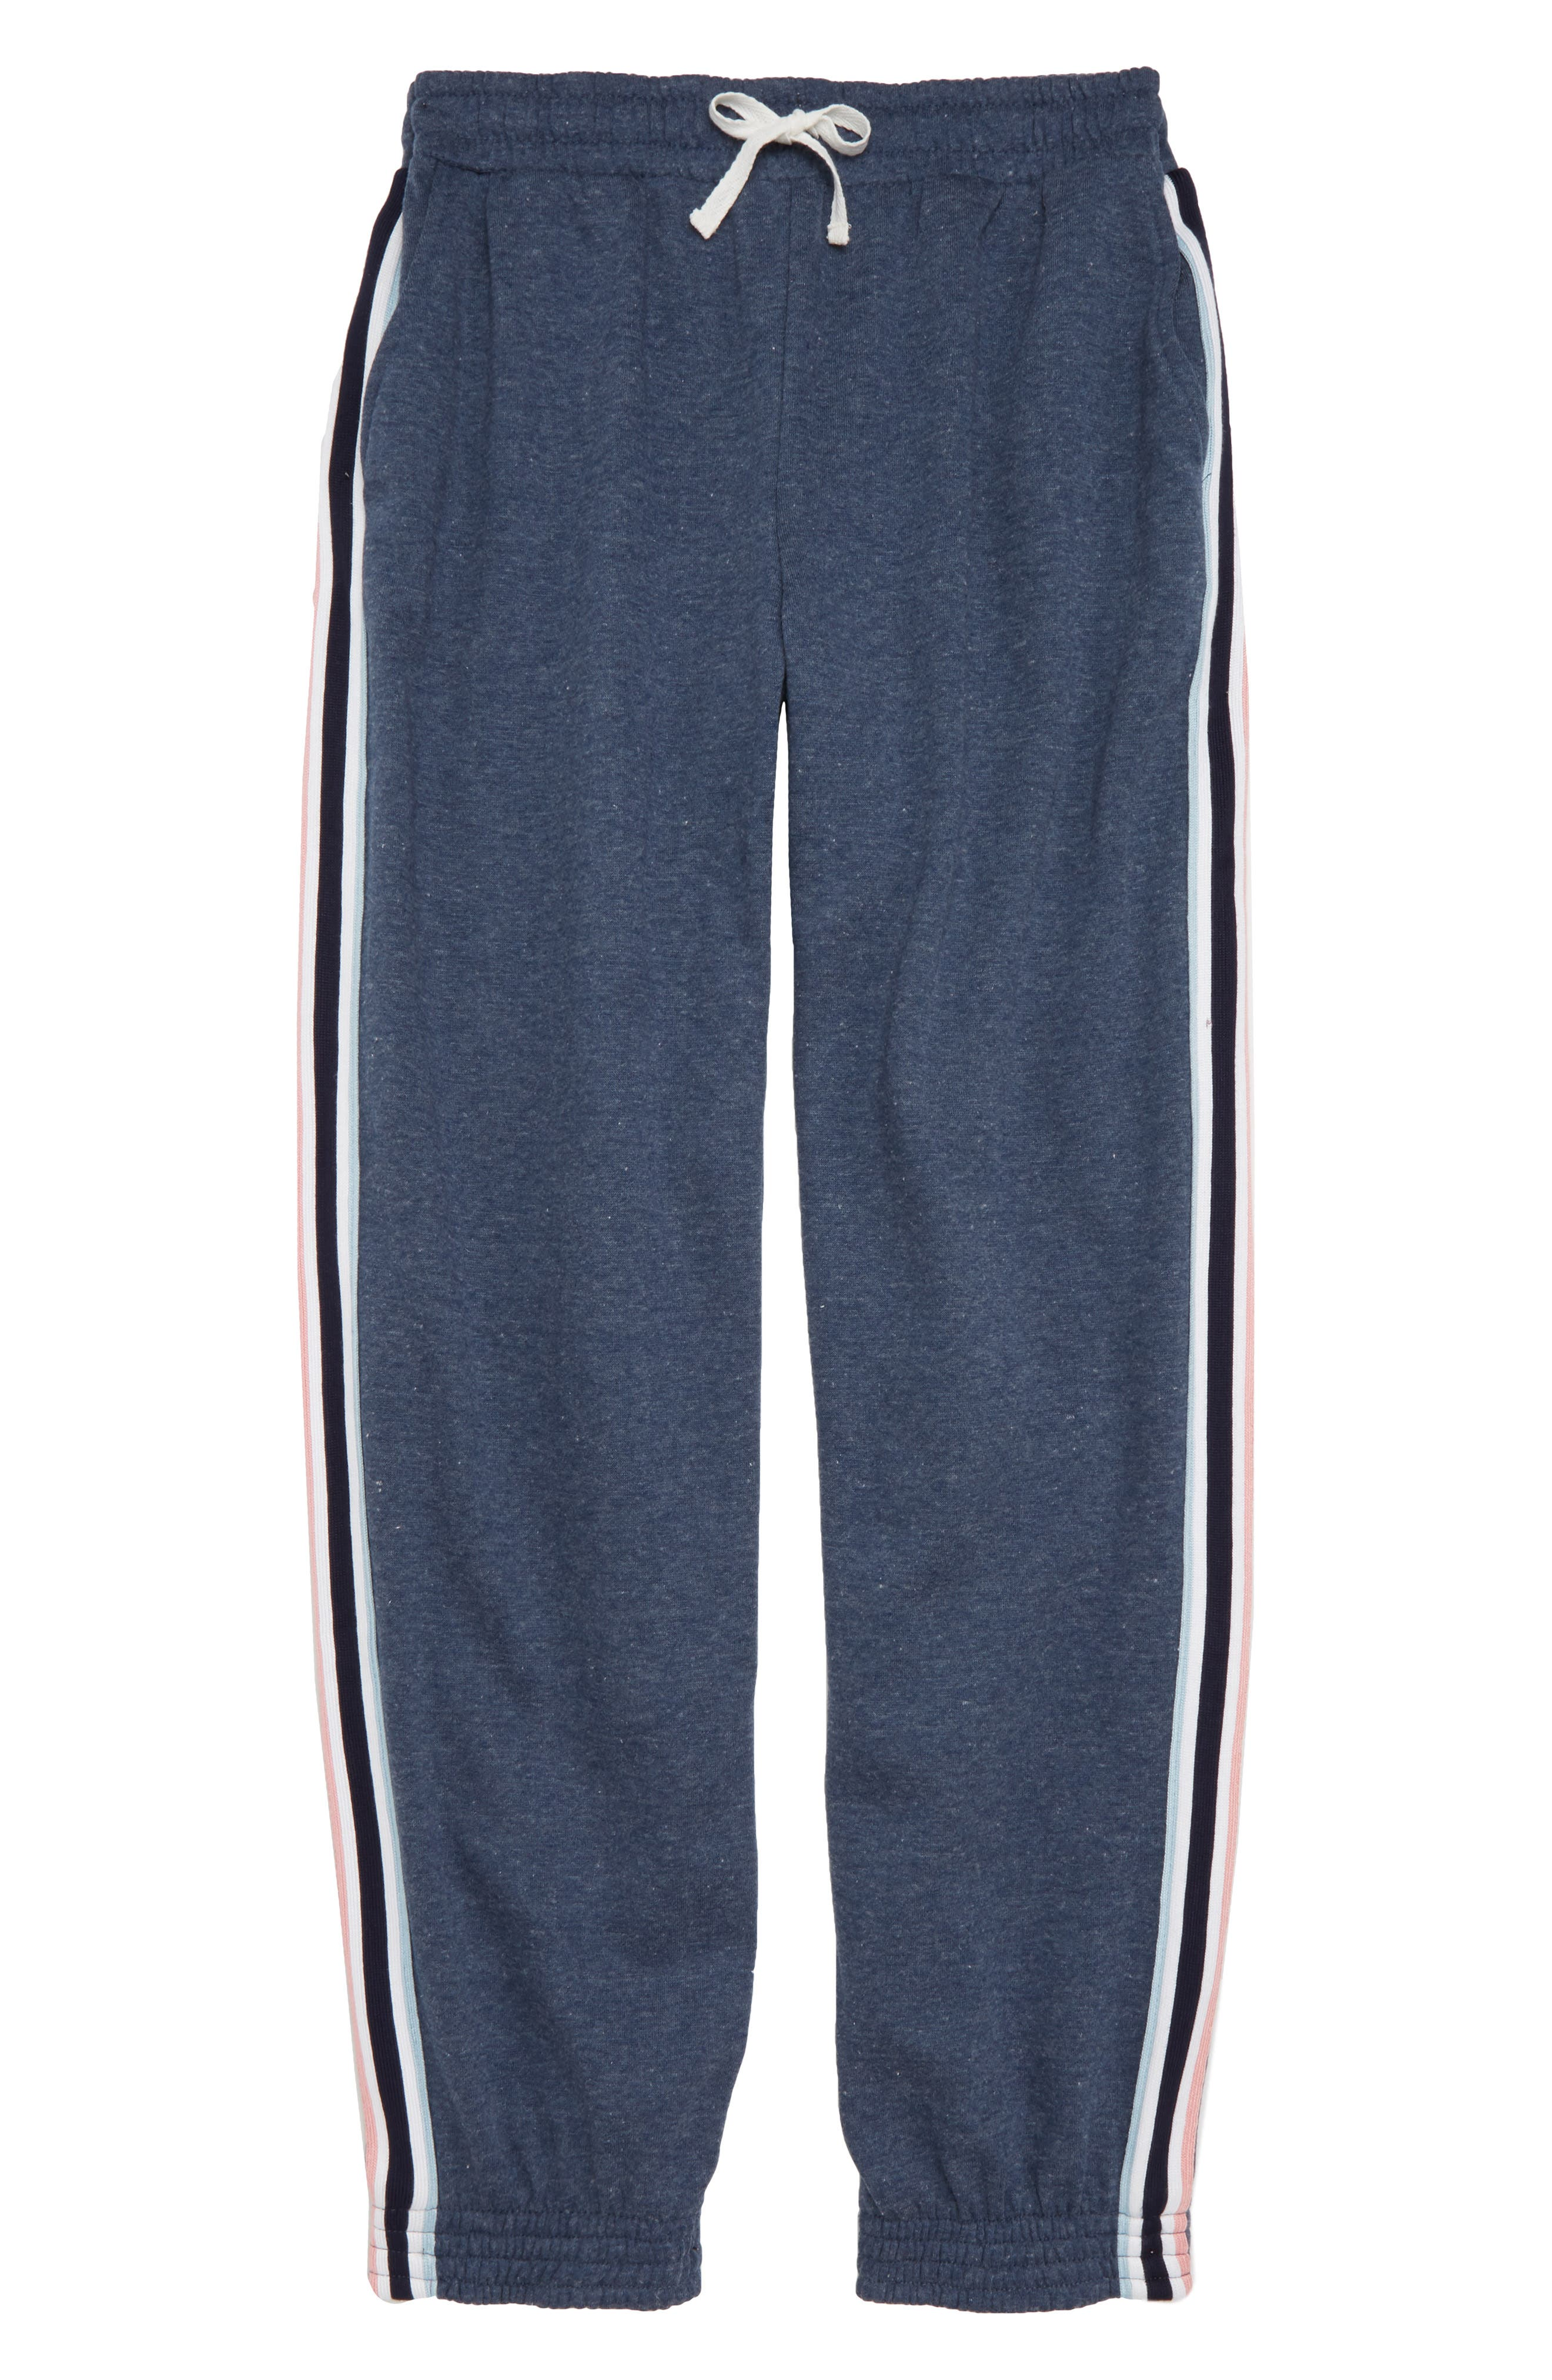 Track Pants,                         Main,                         color, Navy/ Ivory/ Pink